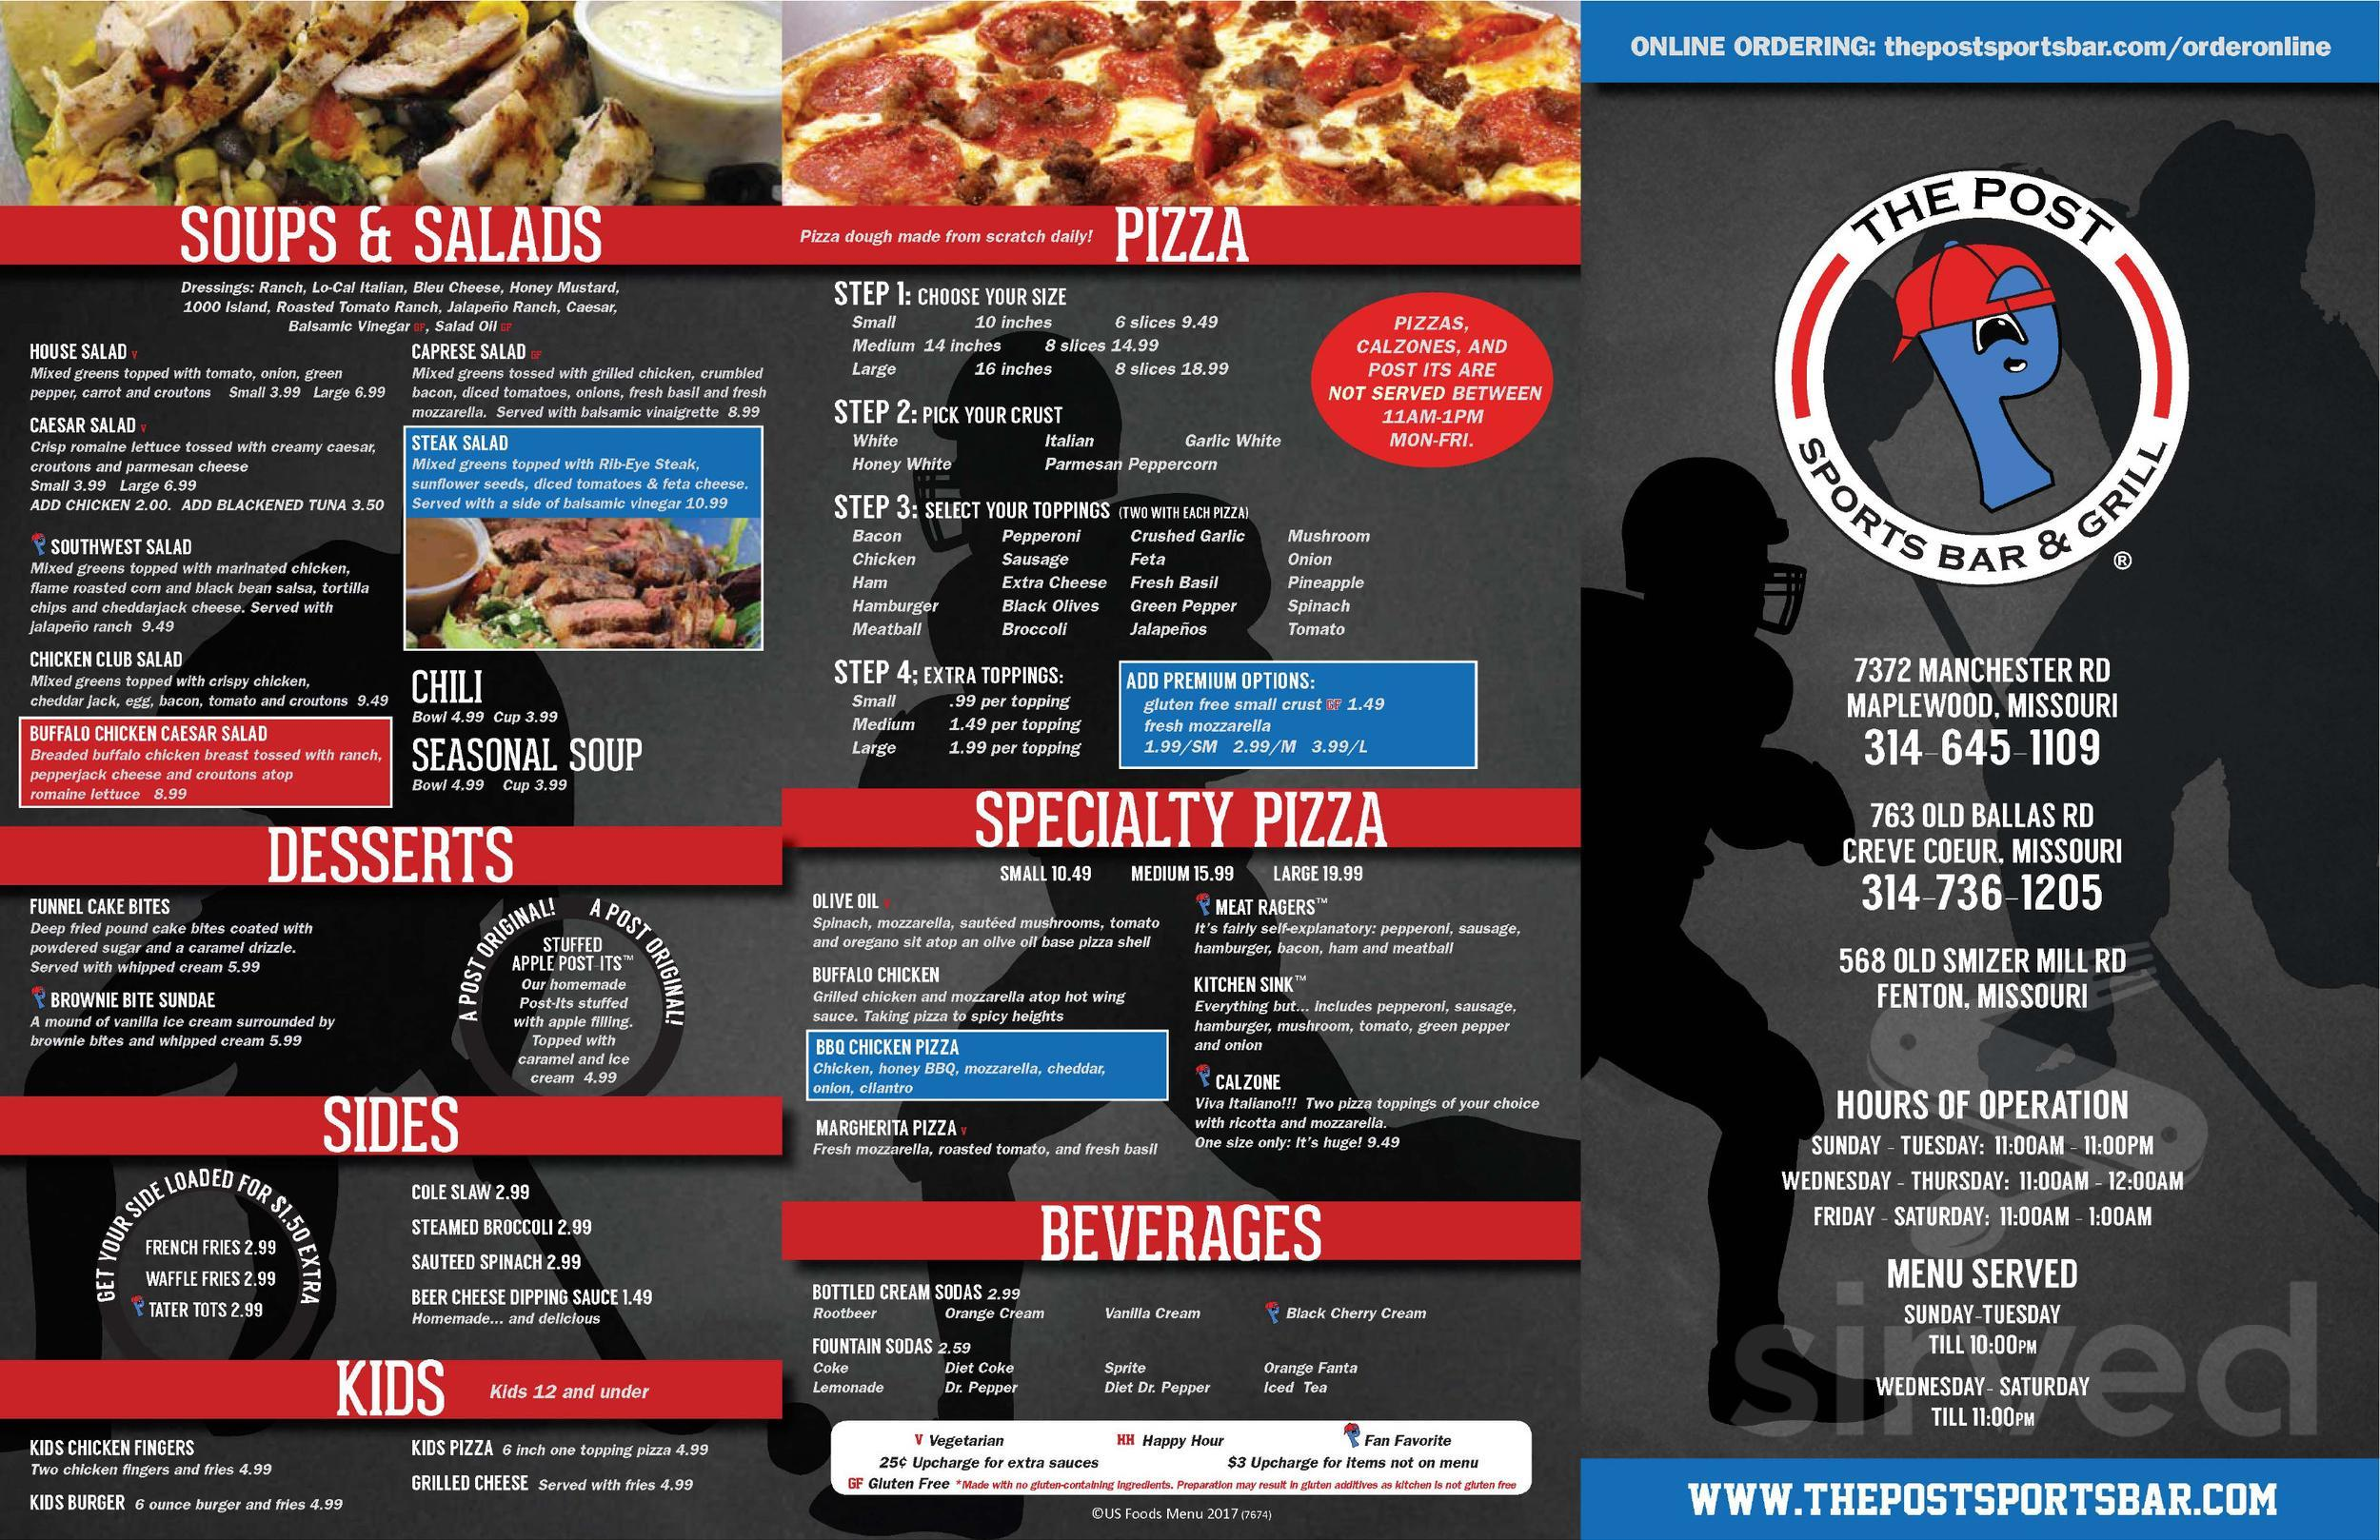 the post sports bar grill menu in maplewood missouri the post sports bar grill menu in